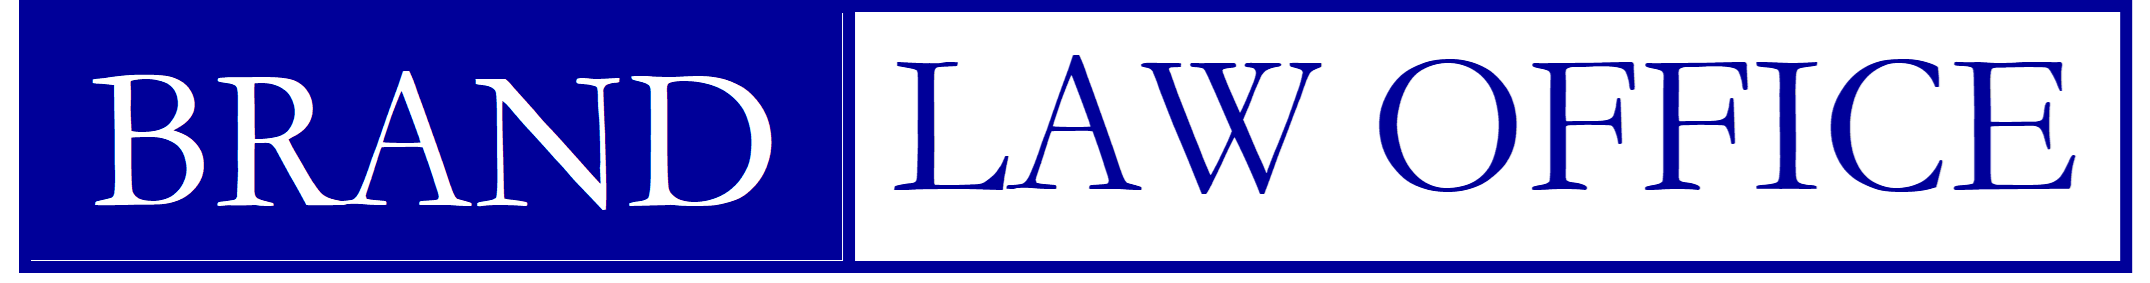 Brand Law Office